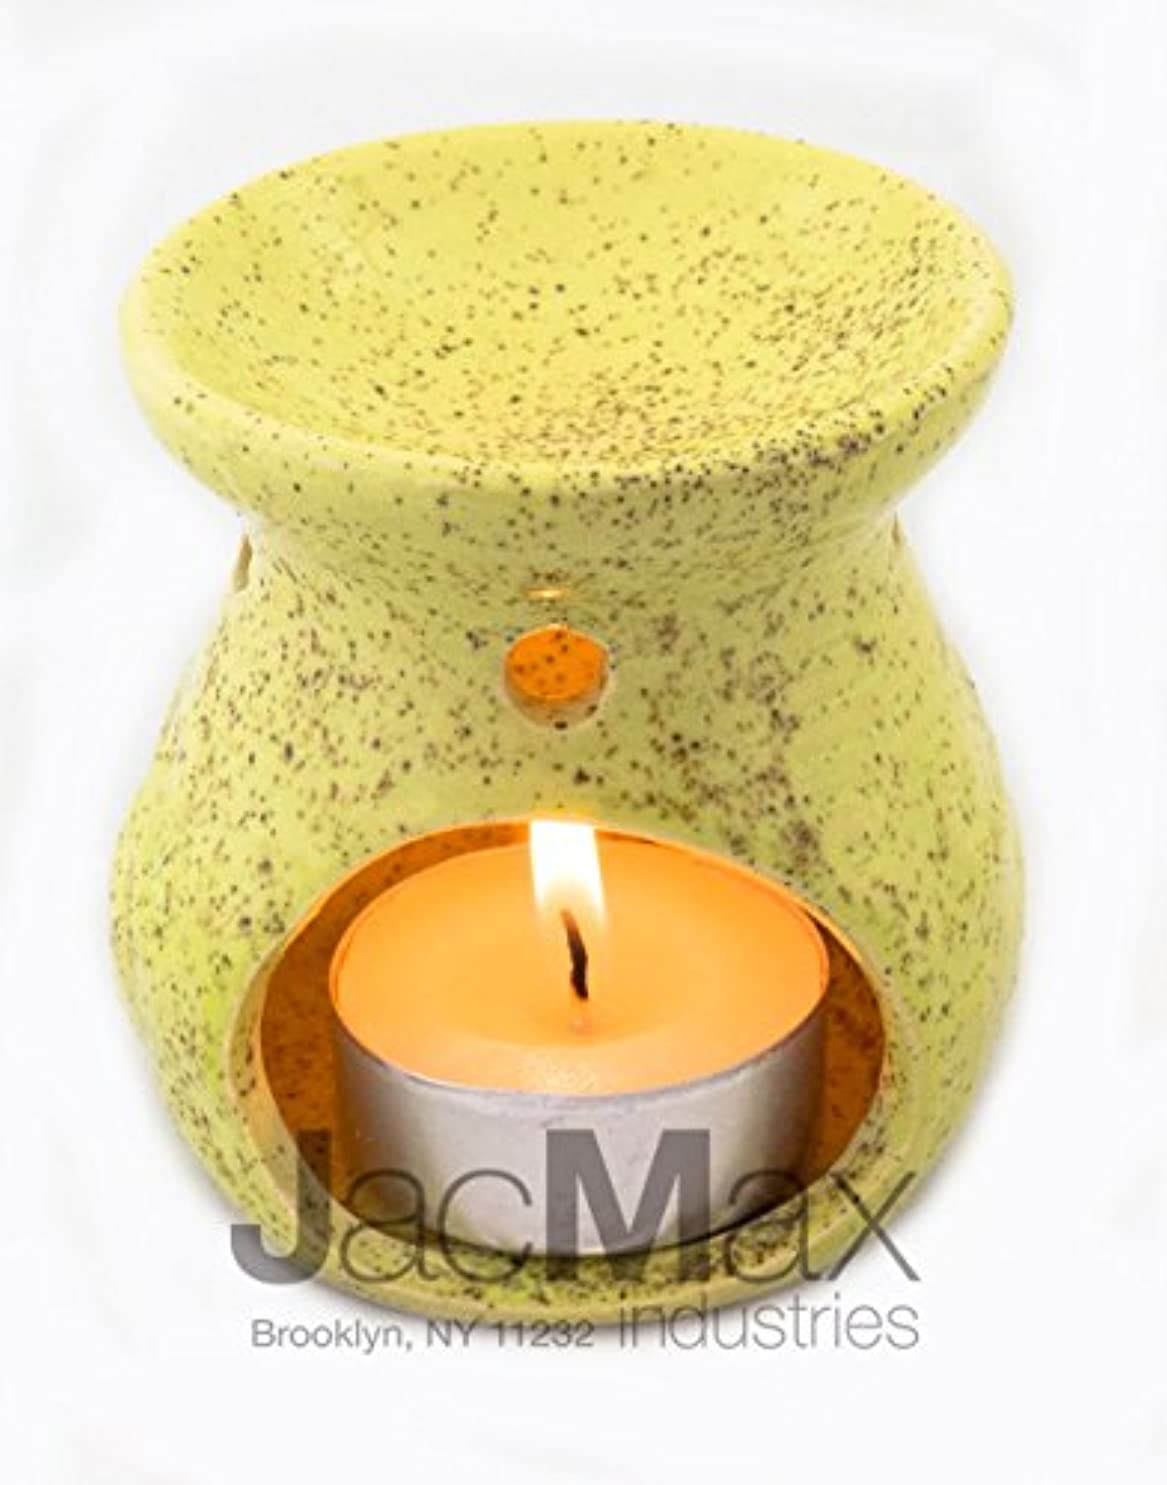 Expressive香りセラミックBurner for Oil andワックスMelts – Fragrance Oil Warmerランプイエロー26 – 17